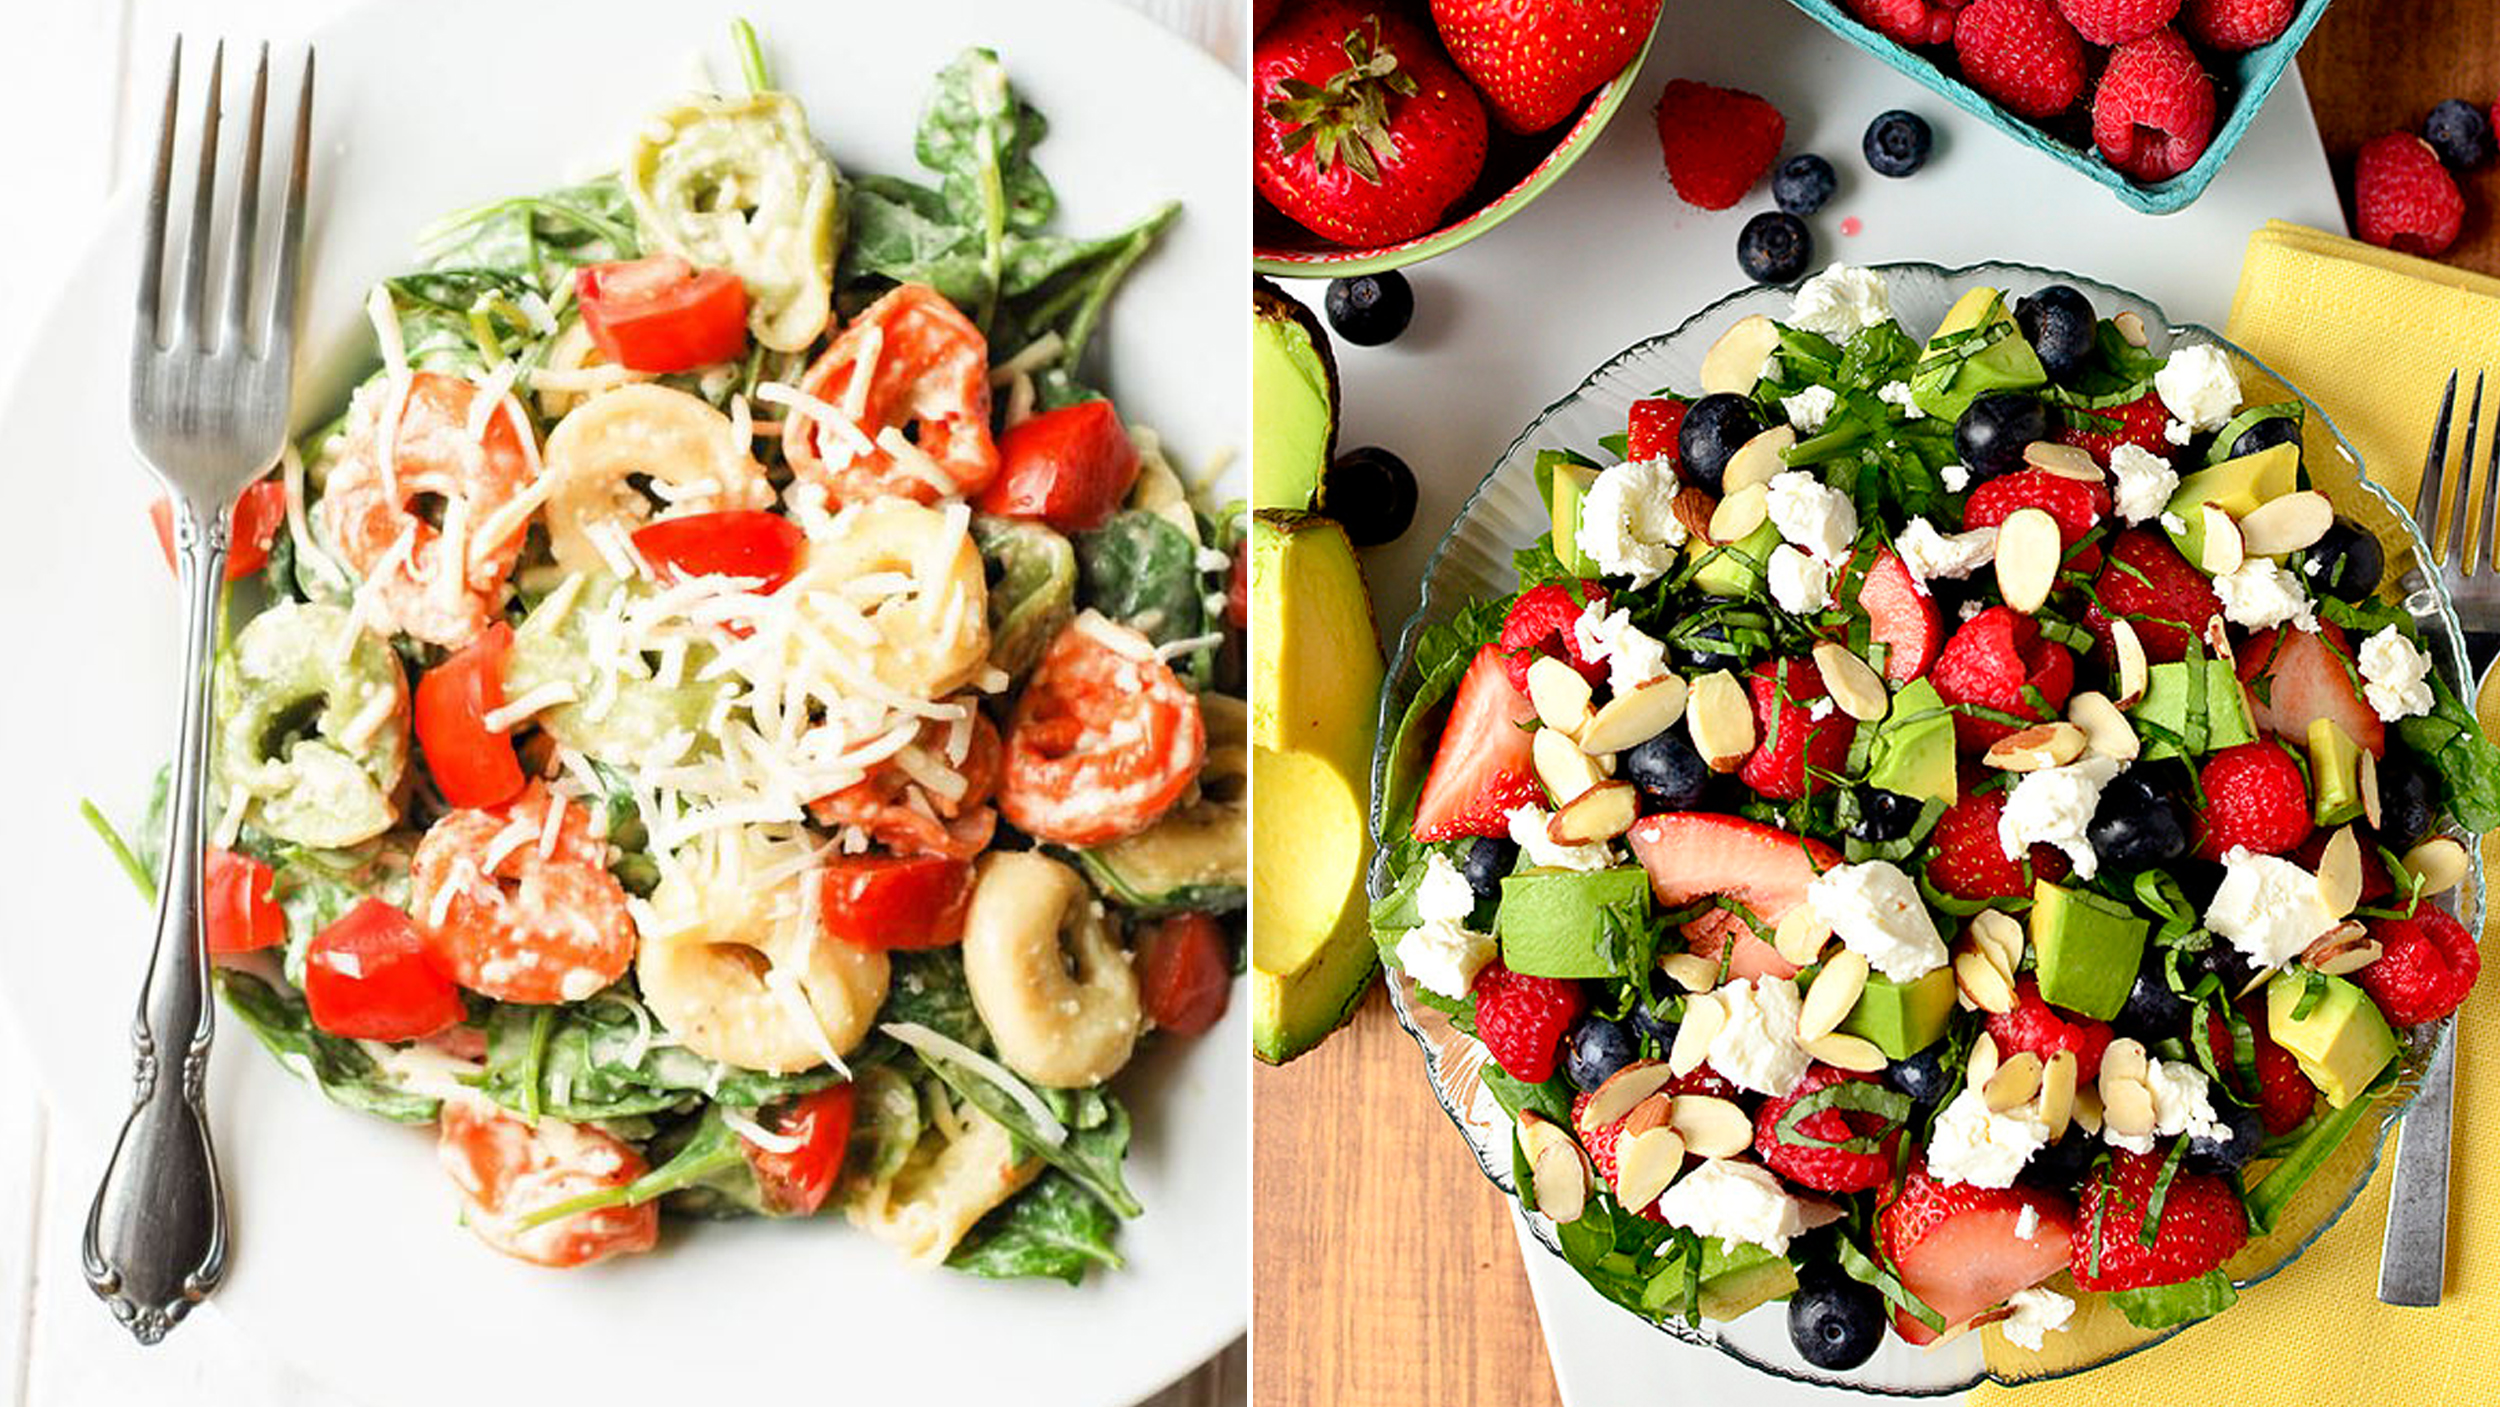 7 Pinterest Approved Healthy Summer Salad Recipes